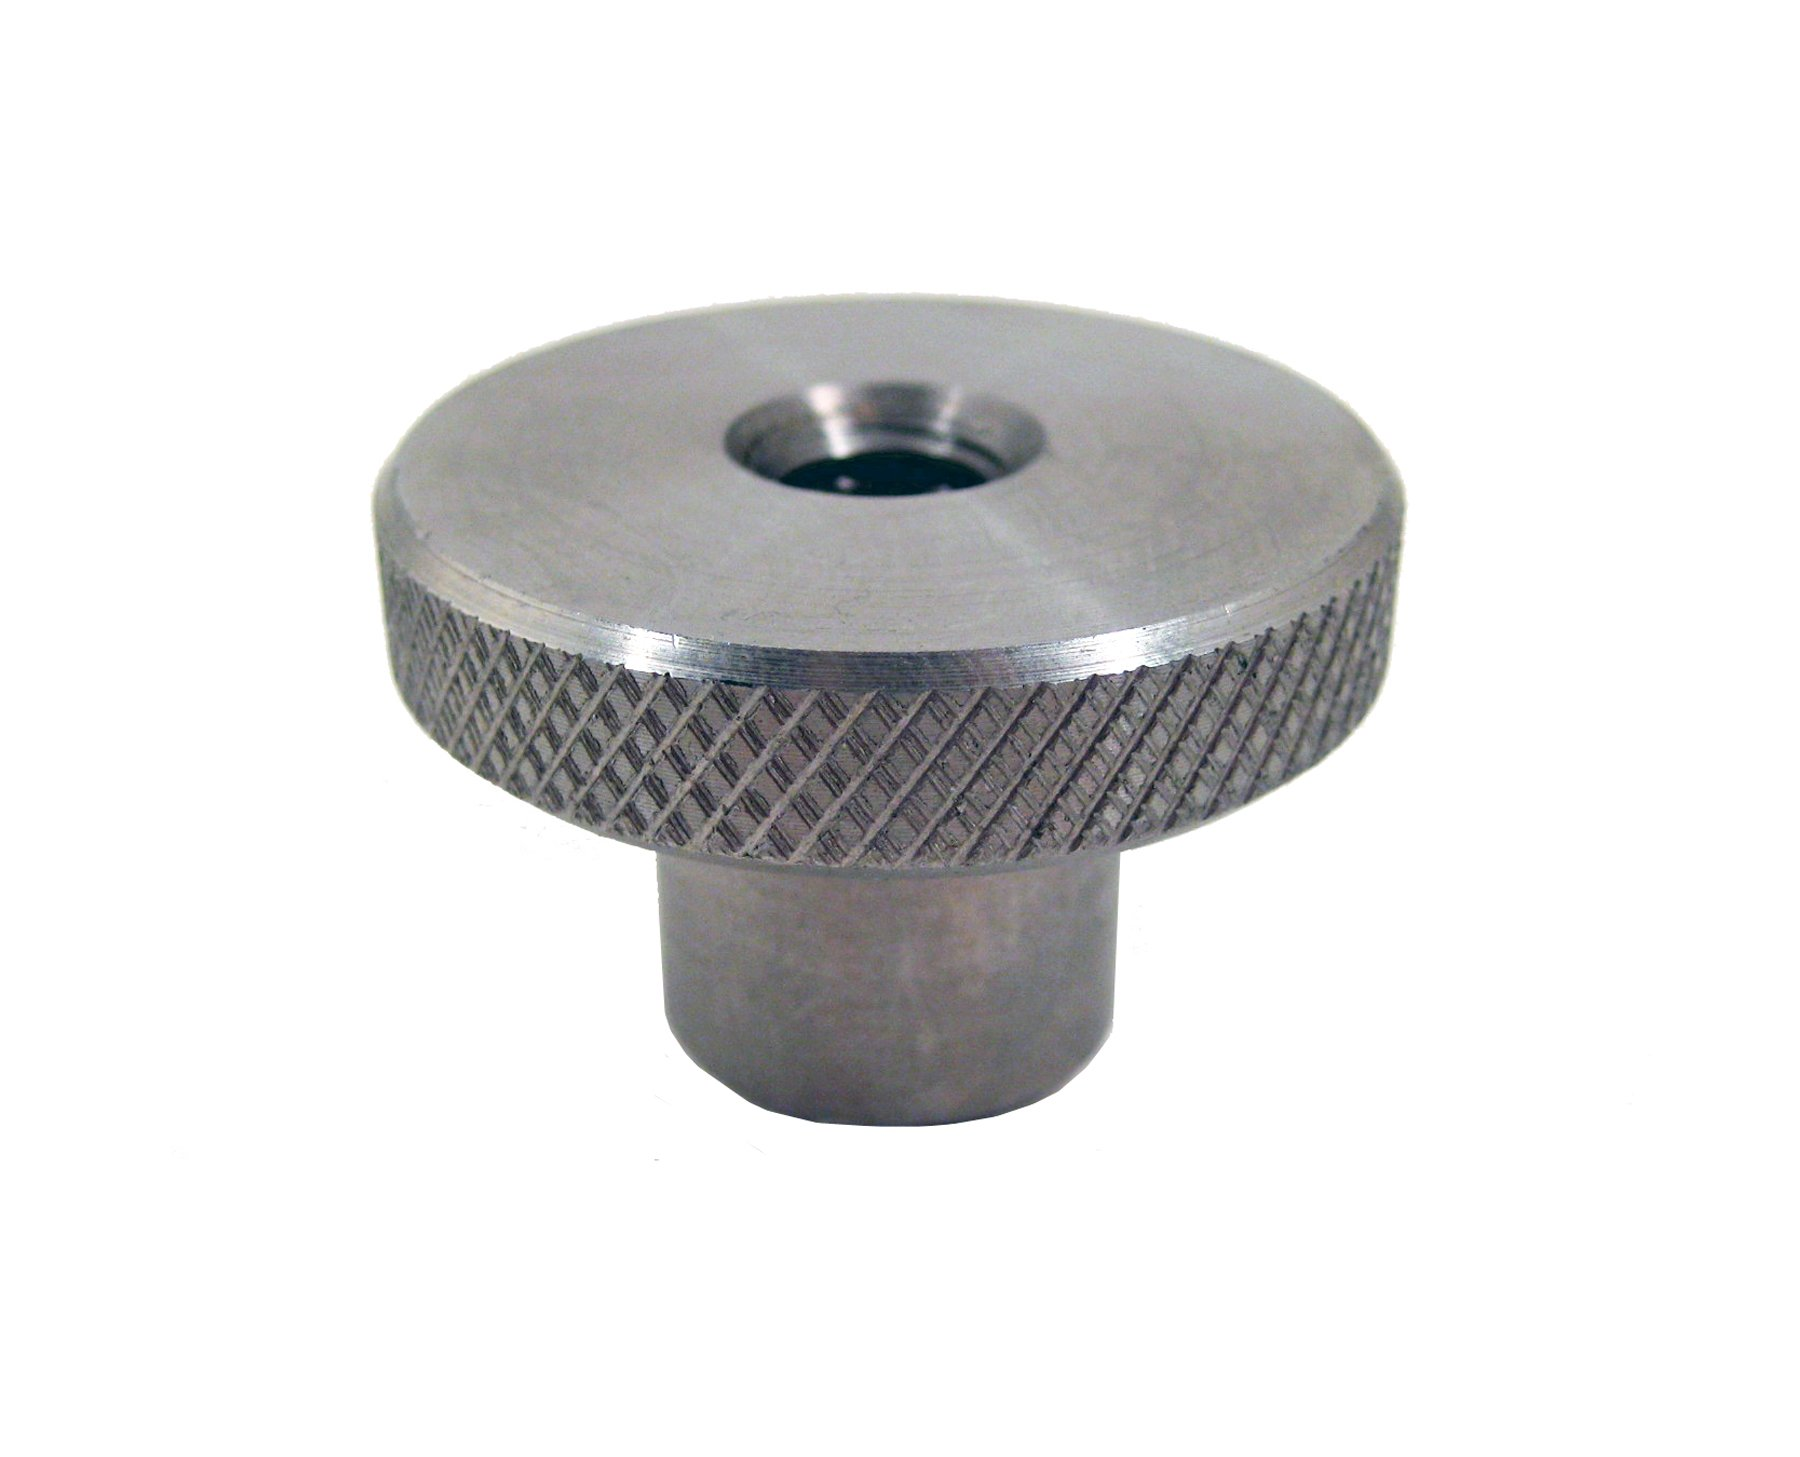 JW Winco Stainless Steel 303 Round Clamping Tapped Knob, Knurled, Threaded Through Hole, 3/8''-16 Thread Size x 1-1/8'' Thread Depth, 2'' Head Diameter (Pack of 1)